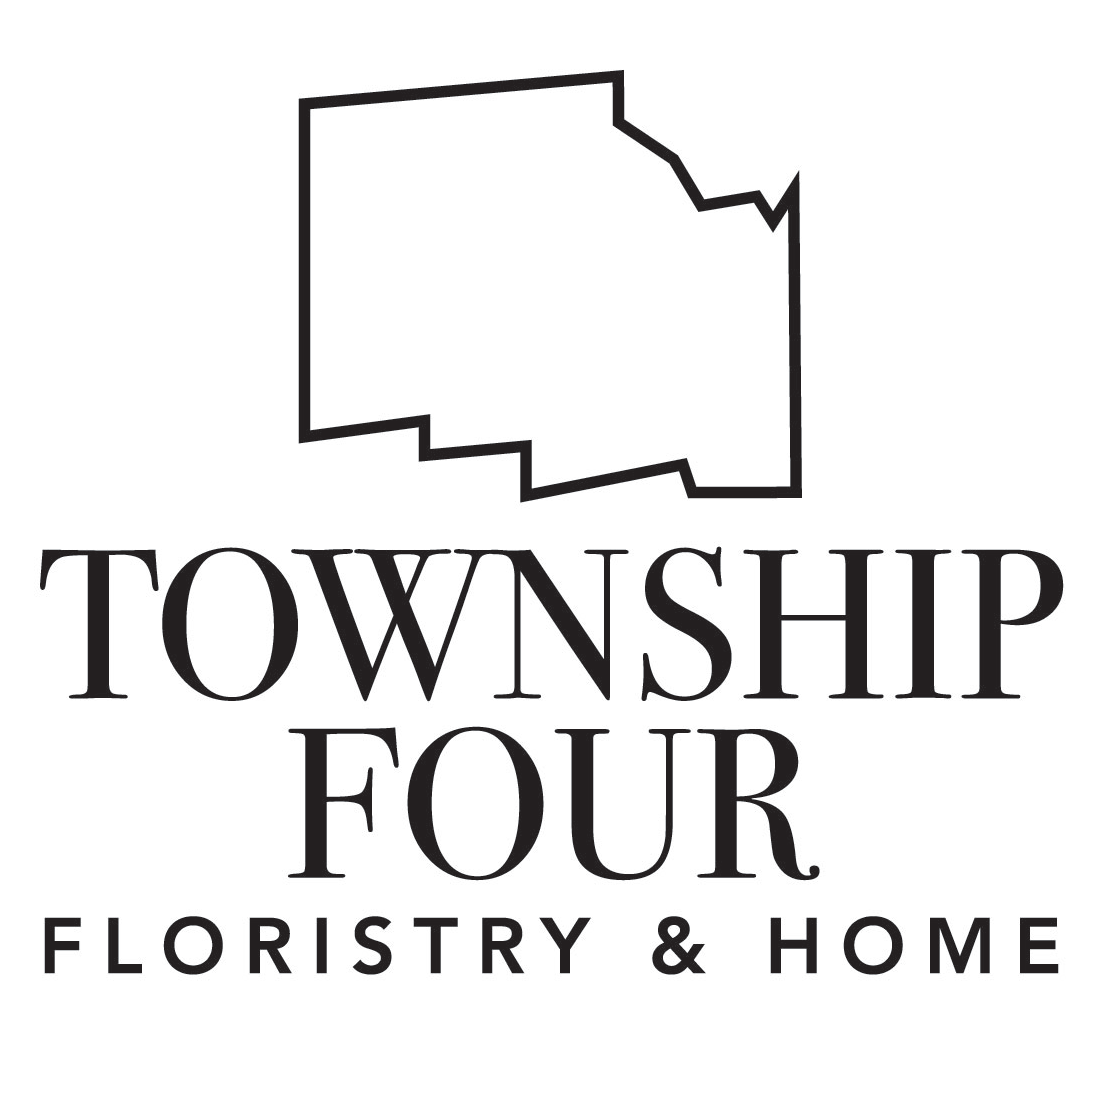 TOWNSHIP FOUR | Floristry & Home